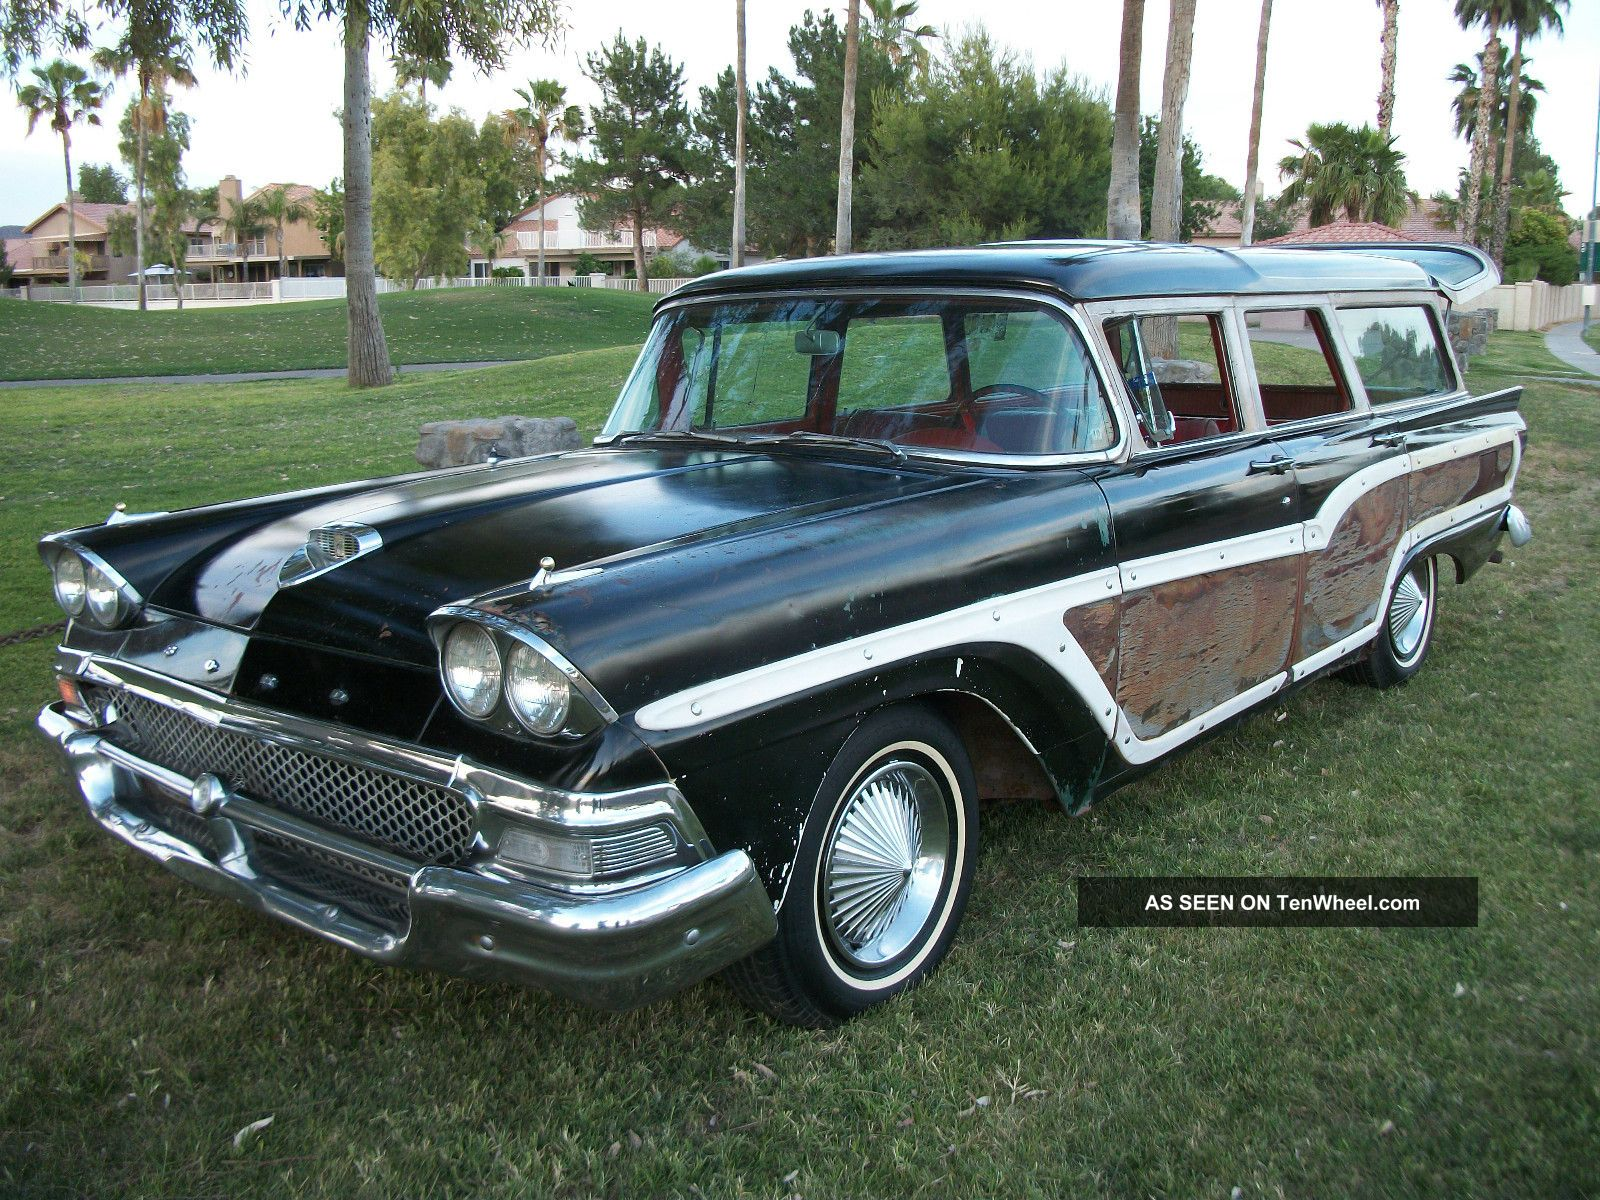 1958 Ford Country Squire 9 Passenger Station Wagon Other photo